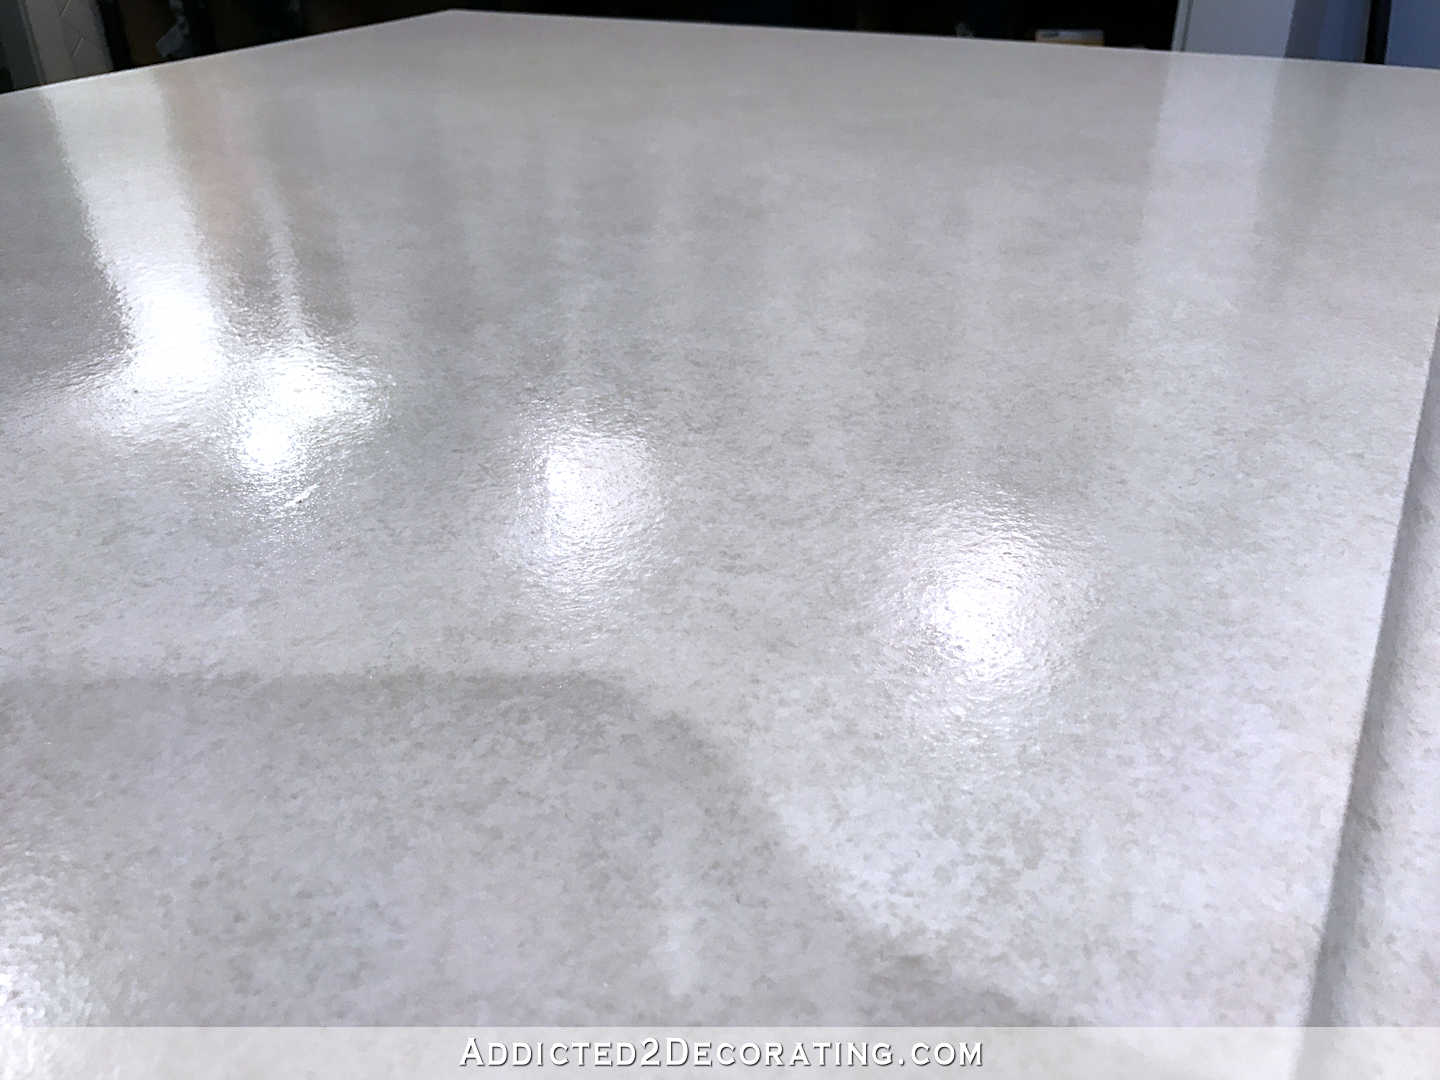 refinishing concrete countertops - 42 - finished counteretop with the clear coat polyurea sealer - peninsula close up